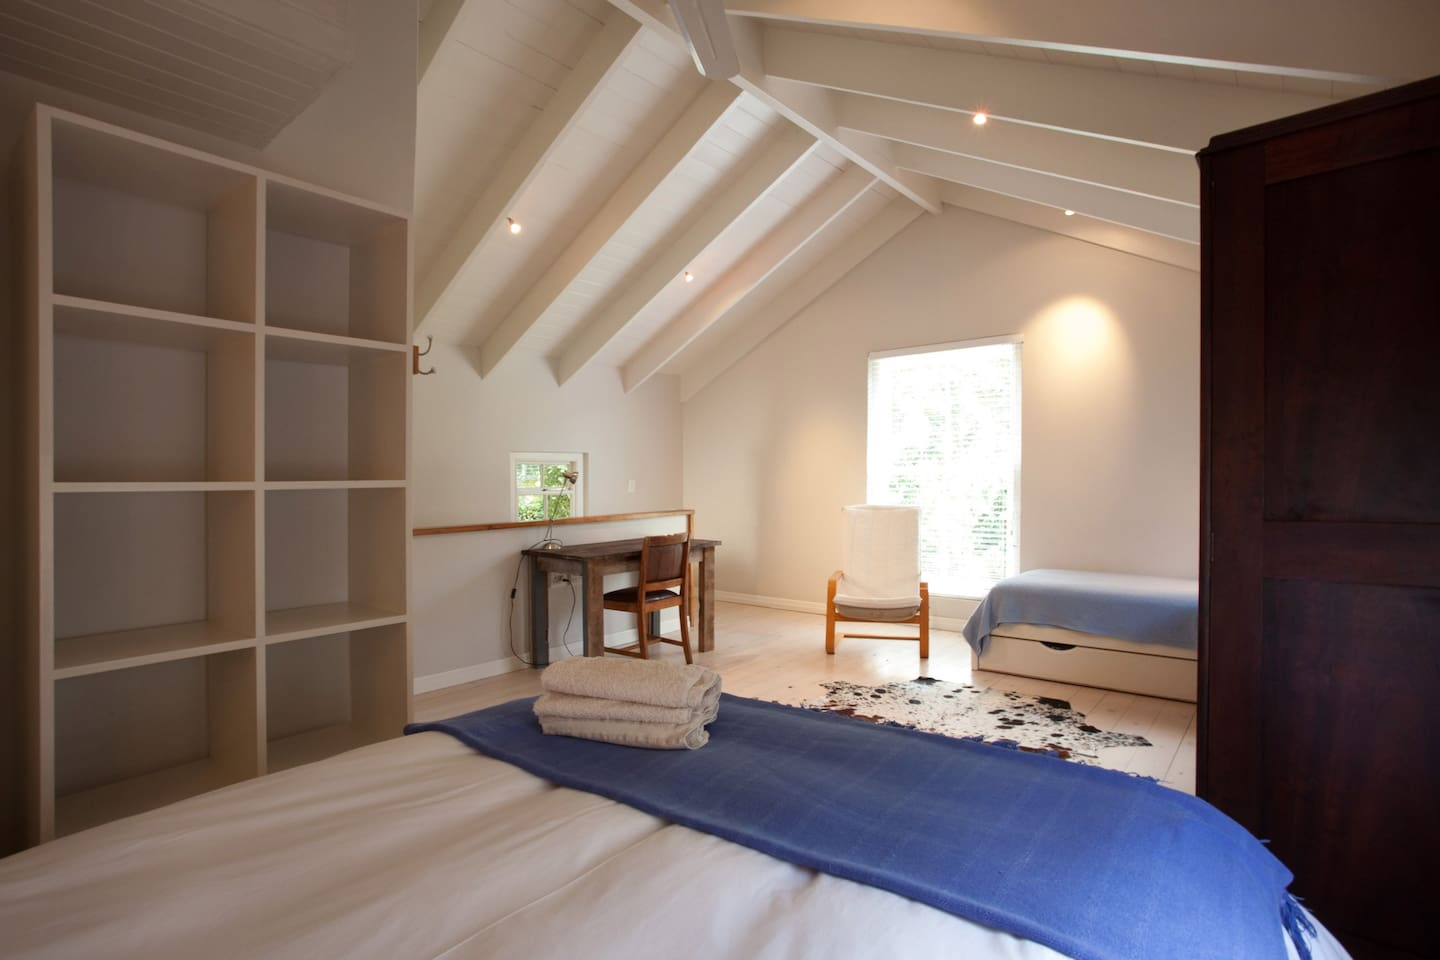 Queen bed and Single bed in one room